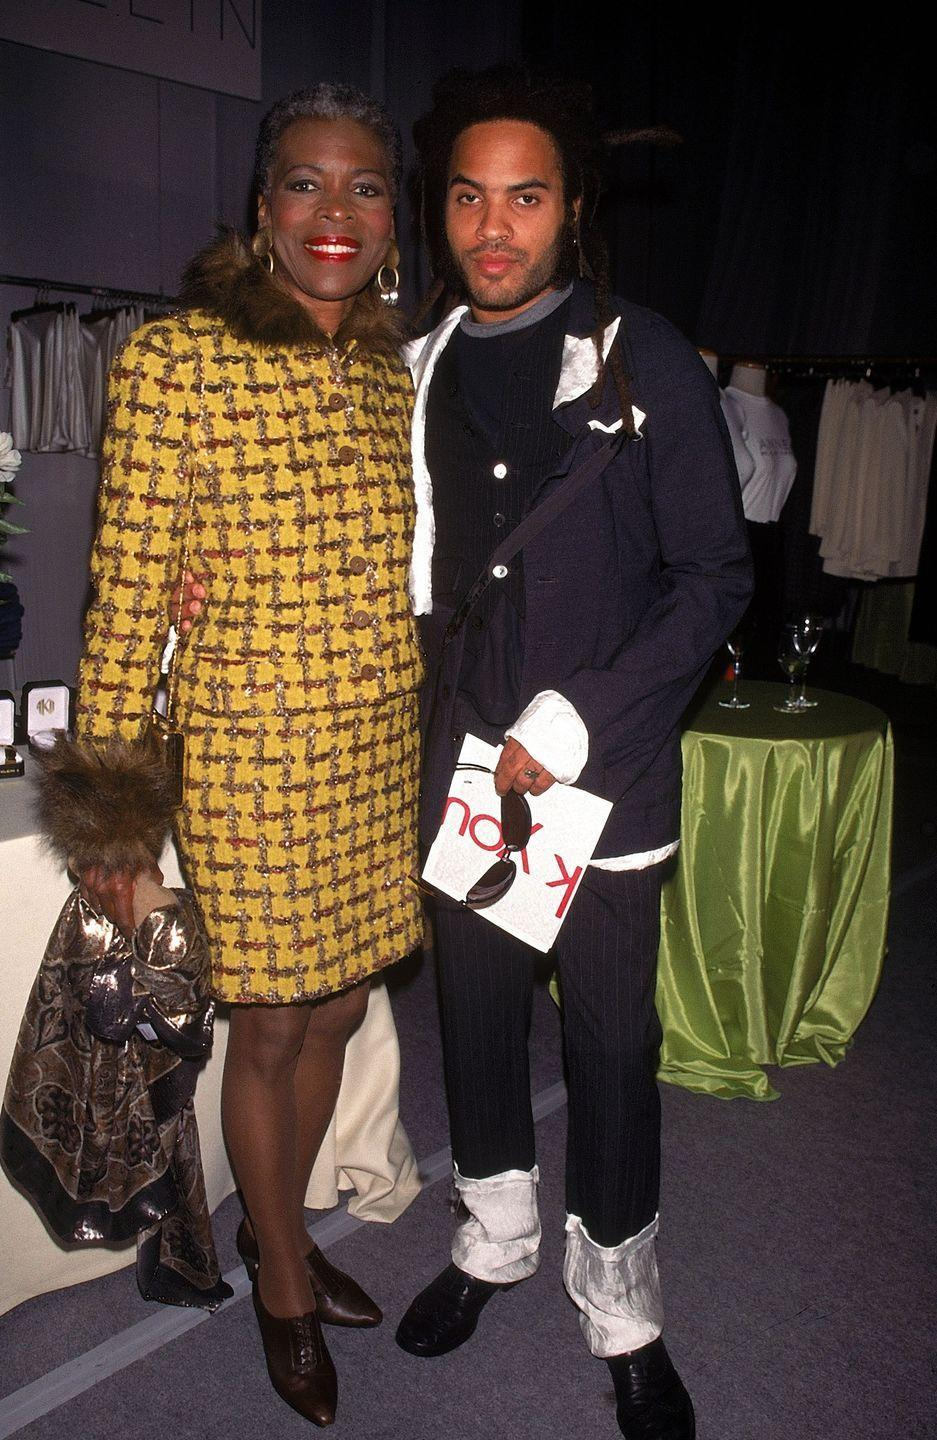 """<p><strong>Famous parent(s)</strong>: actress Roxie Roker and filmmaker Sy Kravitz<br><strong>What it was like</strong>: """"My mother was extremely warm, a really incredibly loving woman, really was extraordinary in the sense that she put others first,"""" he's <a href=""""http://www.huffingtonpost.com/2013/06/04/lenny-kravitz-father_n_3381107.html"""" rel=""""nofollow noopener"""" target=""""_blank"""" data-ylk=""""slk:said"""" class=""""link rapid-noclick-resp"""">said</a>. """"My father had a lot of love and sensitivity in him, but he was really hardcore. Super-heavy disciplinarian. He wasn't the kind of man to talk a lot ... I was afraid of him as a child.""""</p>"""